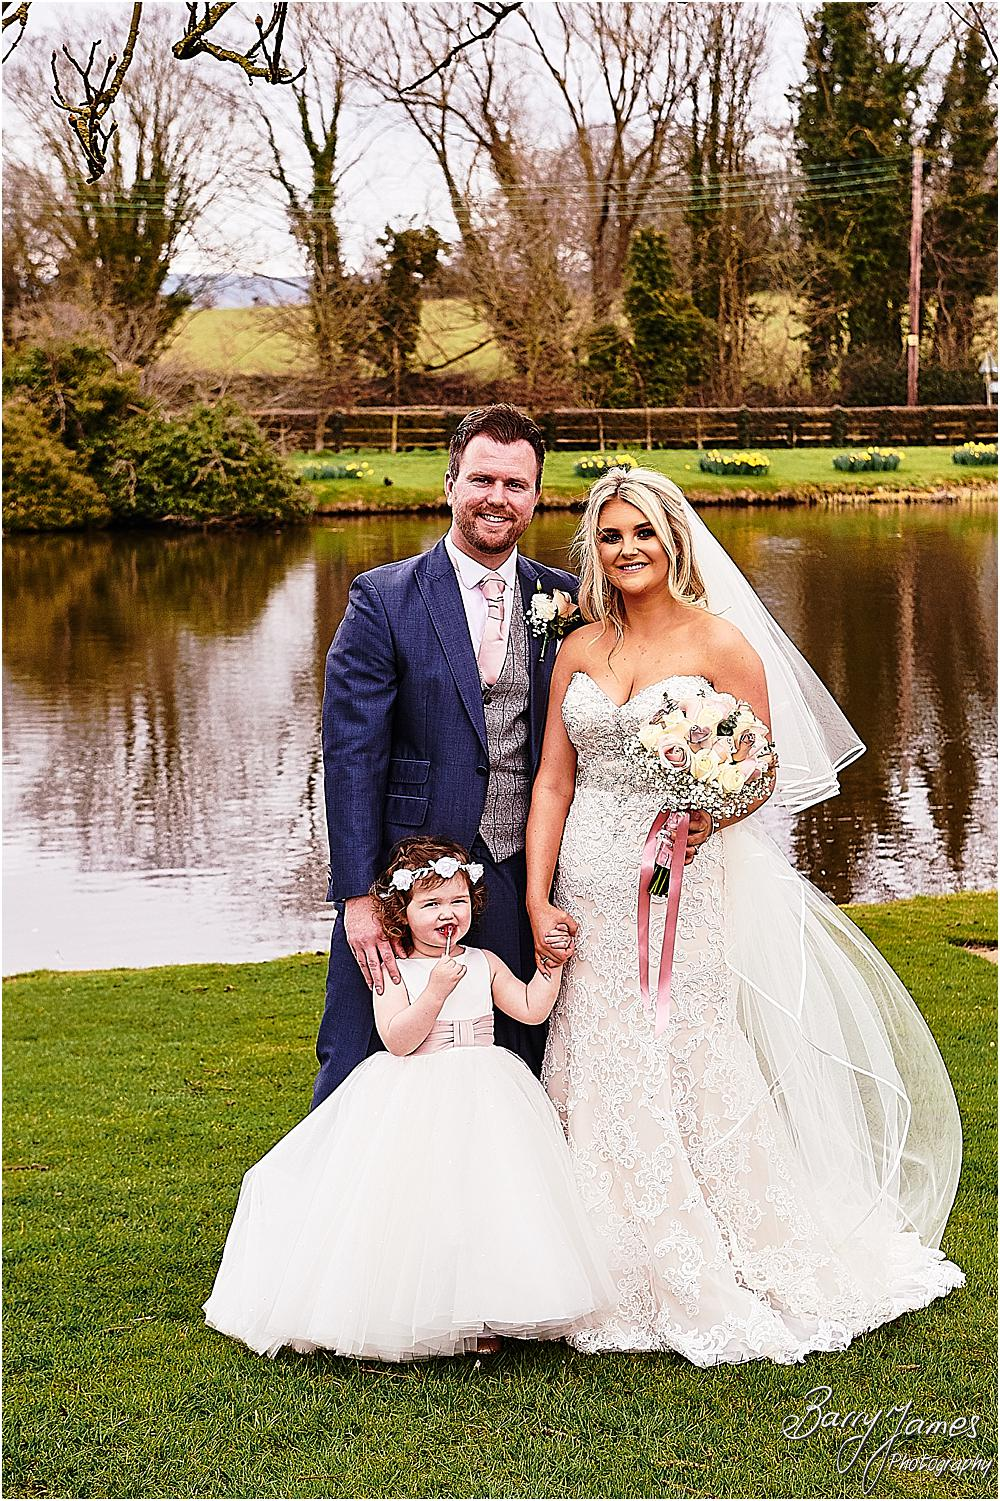 Creative contemporary portraits of the family during the wedding reception at The Moat House in Acton Trussell by Staffordhire Wedding Photographers Barry James